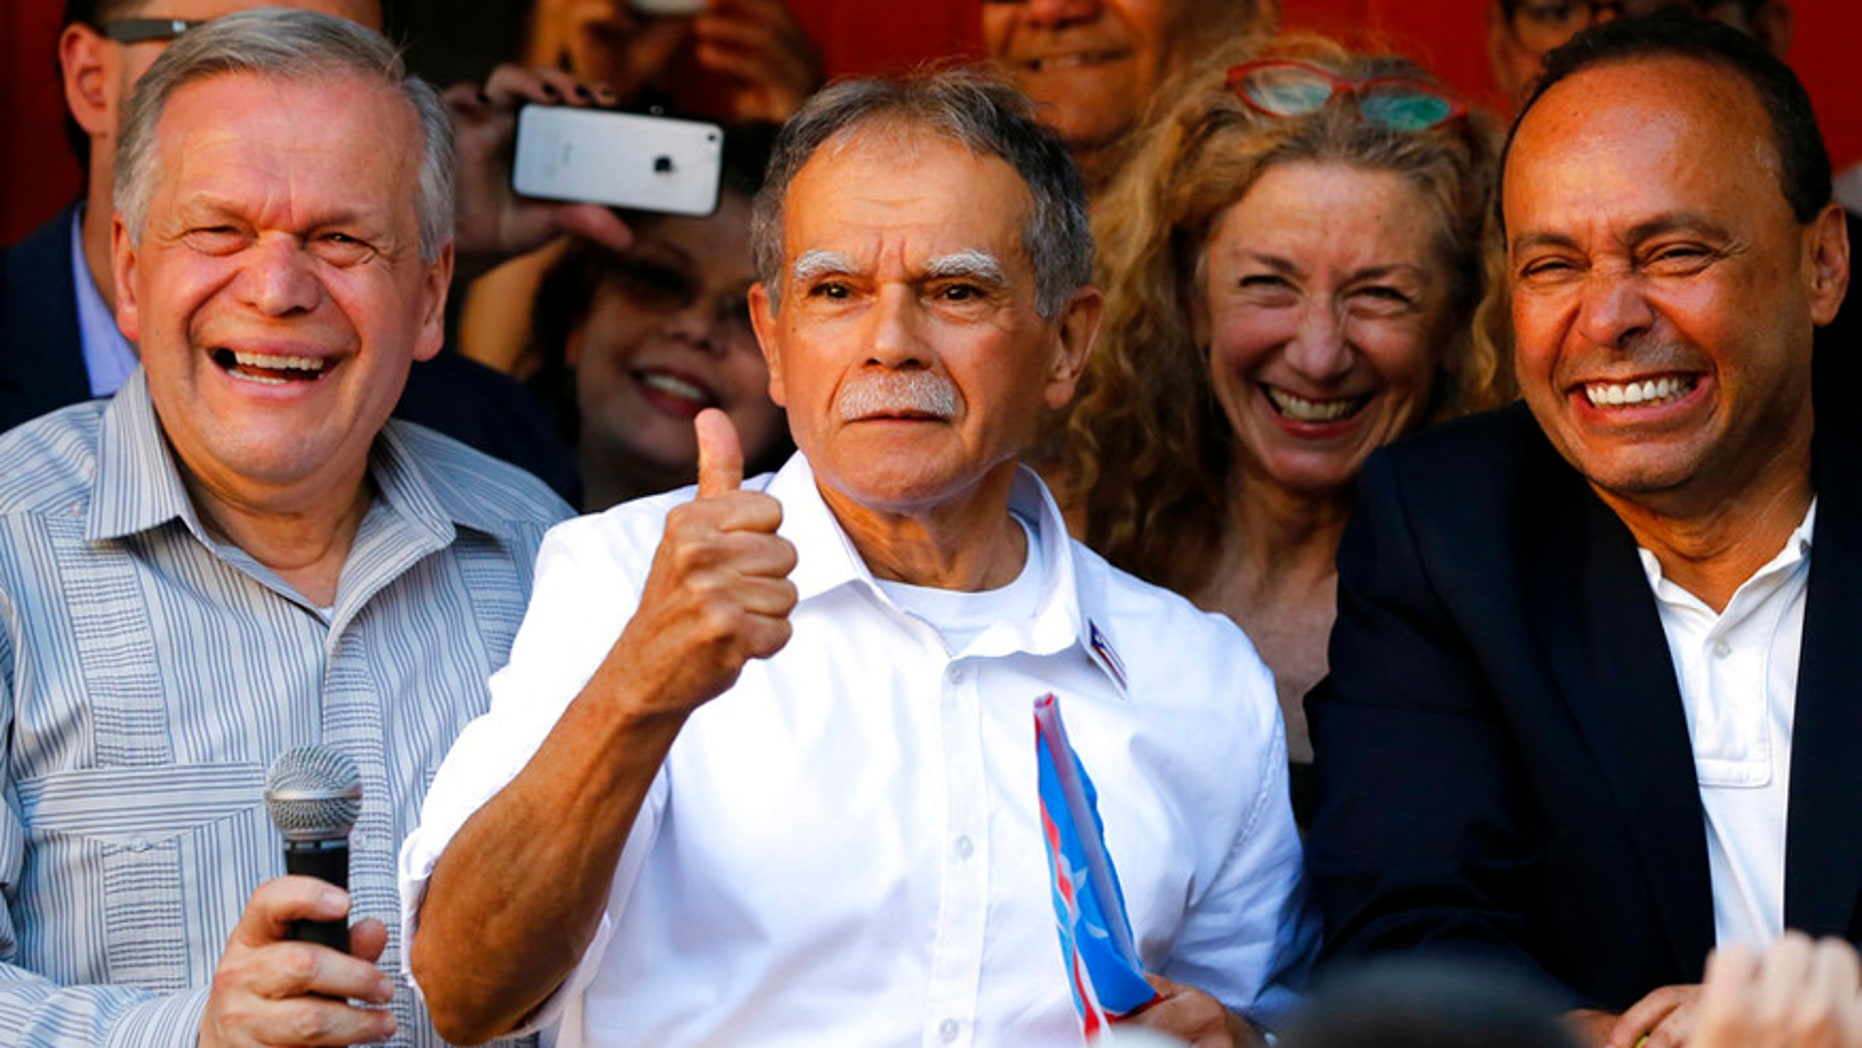 FILE- In this May 18, 2017 file photo, Puerto Rican nationalist Oscar Lopez Rivera, center, reacts to the crowd as his brother Jose, left, and U.S. Rep Luis Gutierrez, D-Ill., join him at a gathering in his honor in Chicago's Humboldt Park neighborhood. New York City's annual Puerto Rican Day parade will take place under a cloud of controversy this year because of a decision by organizers to honor Lopez Rivera, who spent decades in prison because of his involvement with the terrorist group FALN. (AP Photo/Charles Rex Arbogast, File)